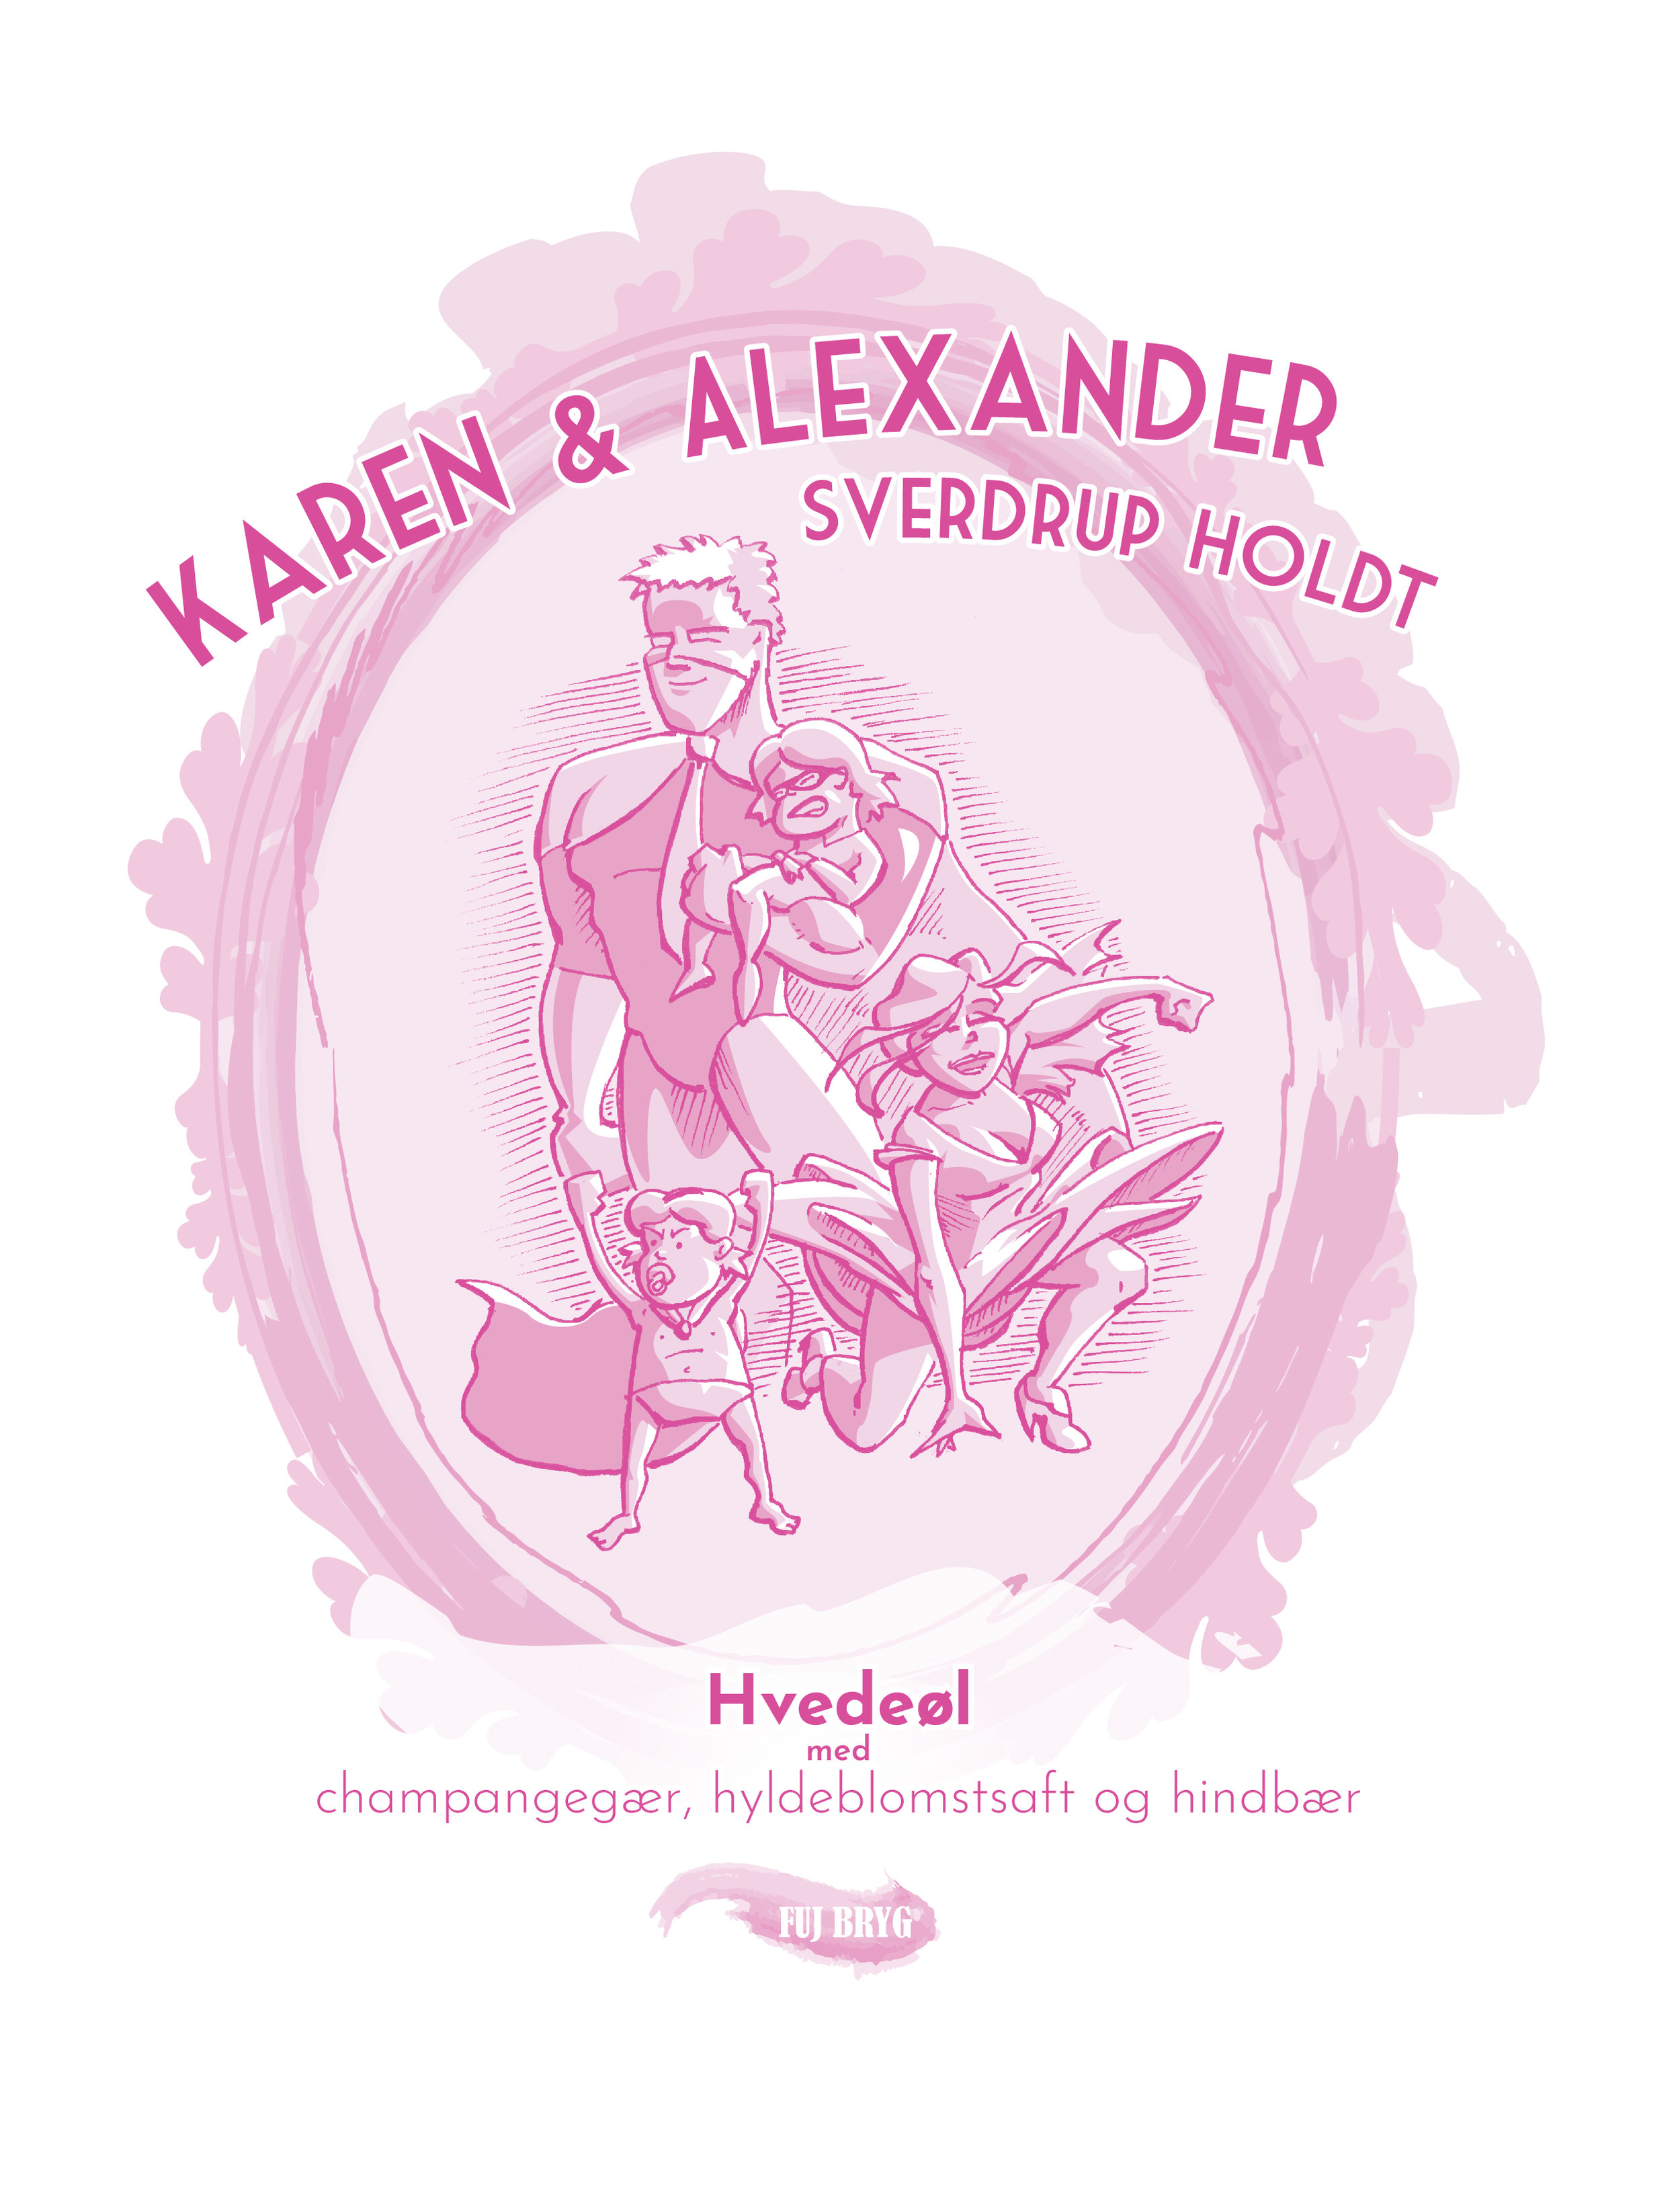 Weddingbeerlabel-02.jpg